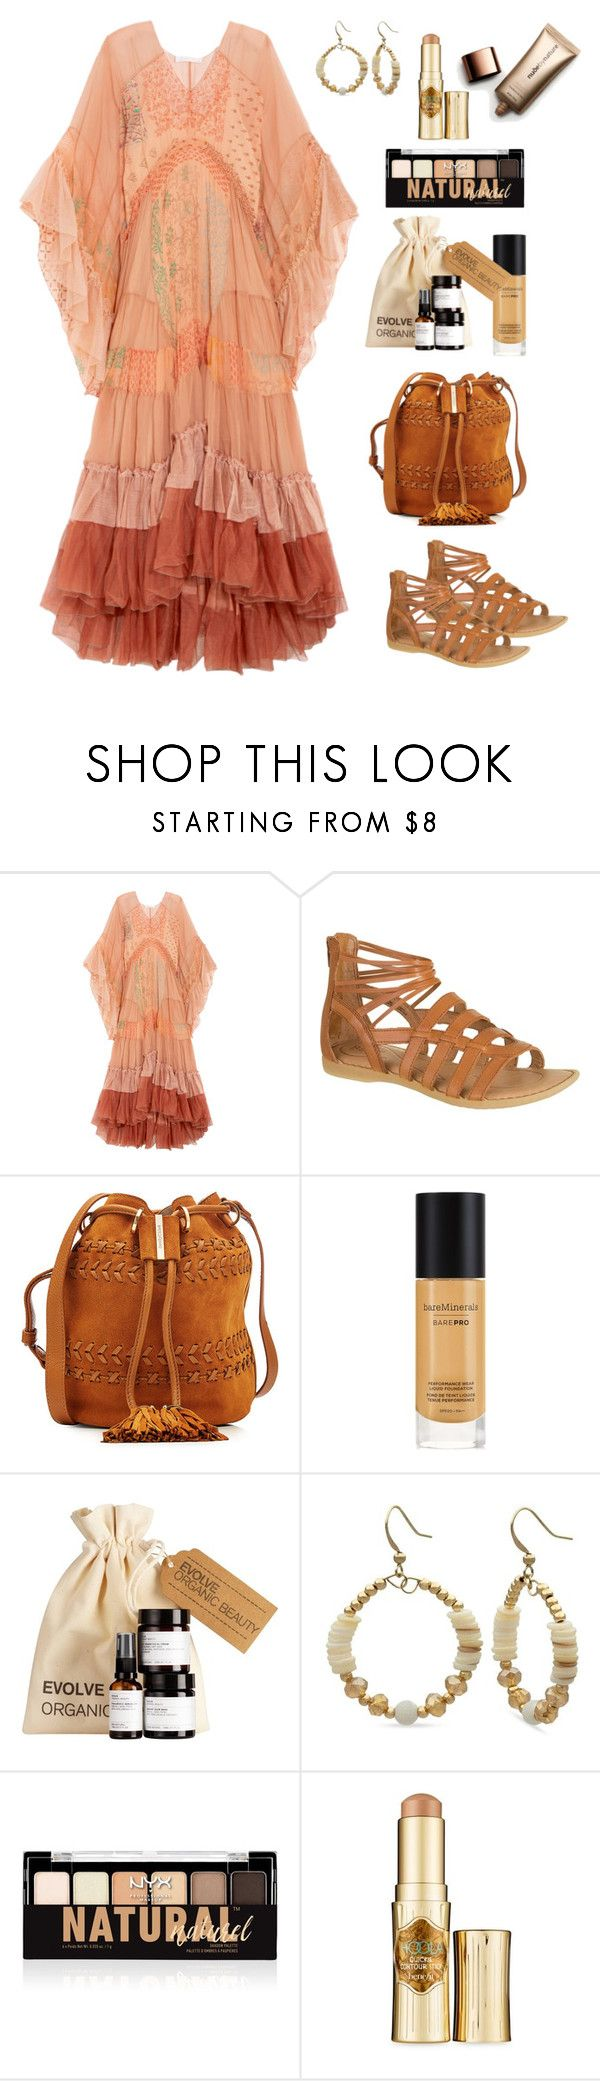 """Boho Baby!"" by alara-cary on Polyvore featuring Chloé, See by Chloé, Bare Escentuals, Kim Rogers, NYX, Benefit and Nude by Nature"